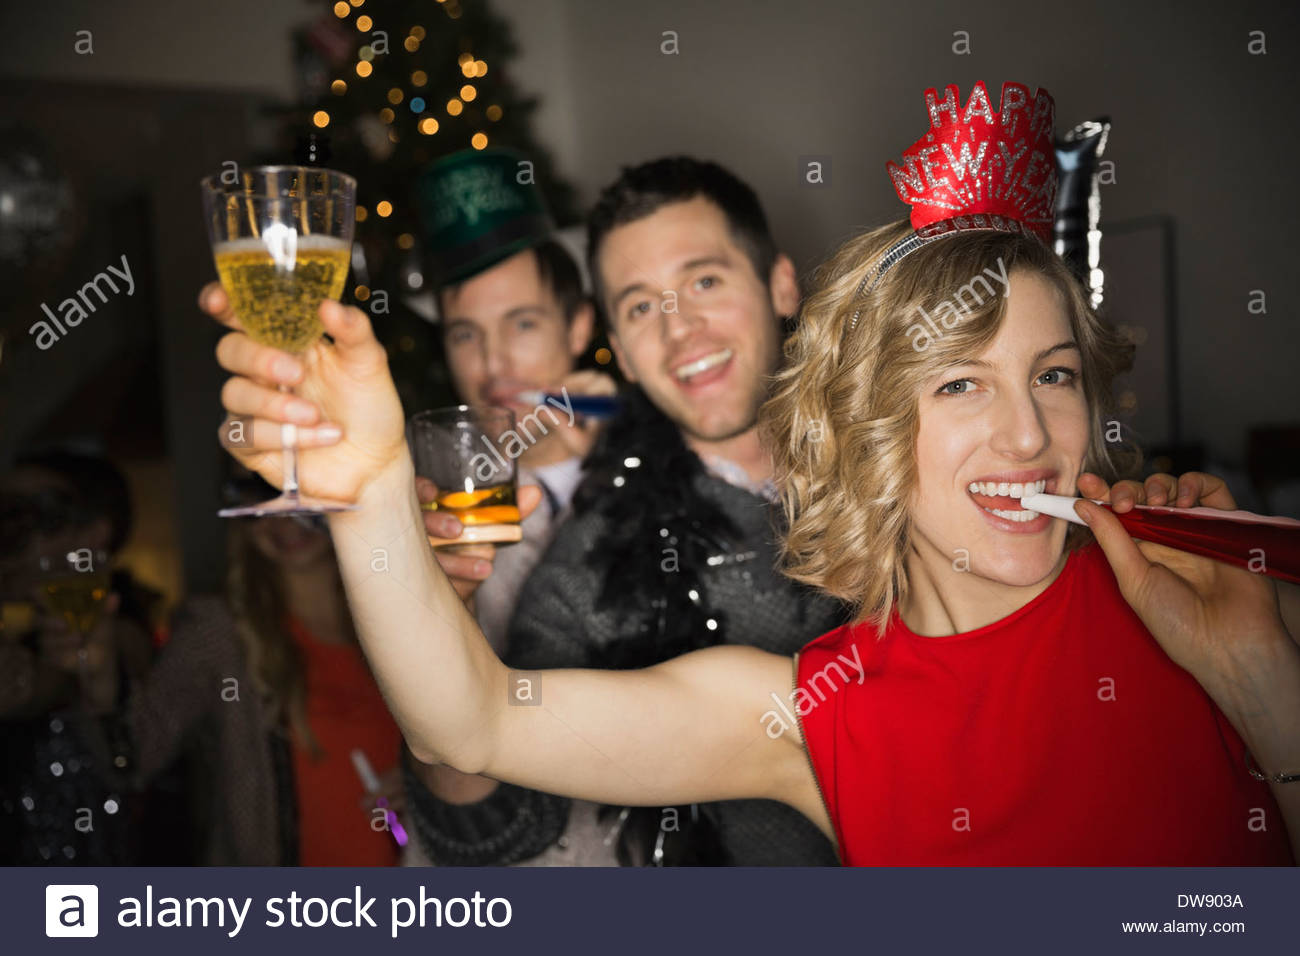 Portrait of friends enjoying New Years Eve party - Stock Image